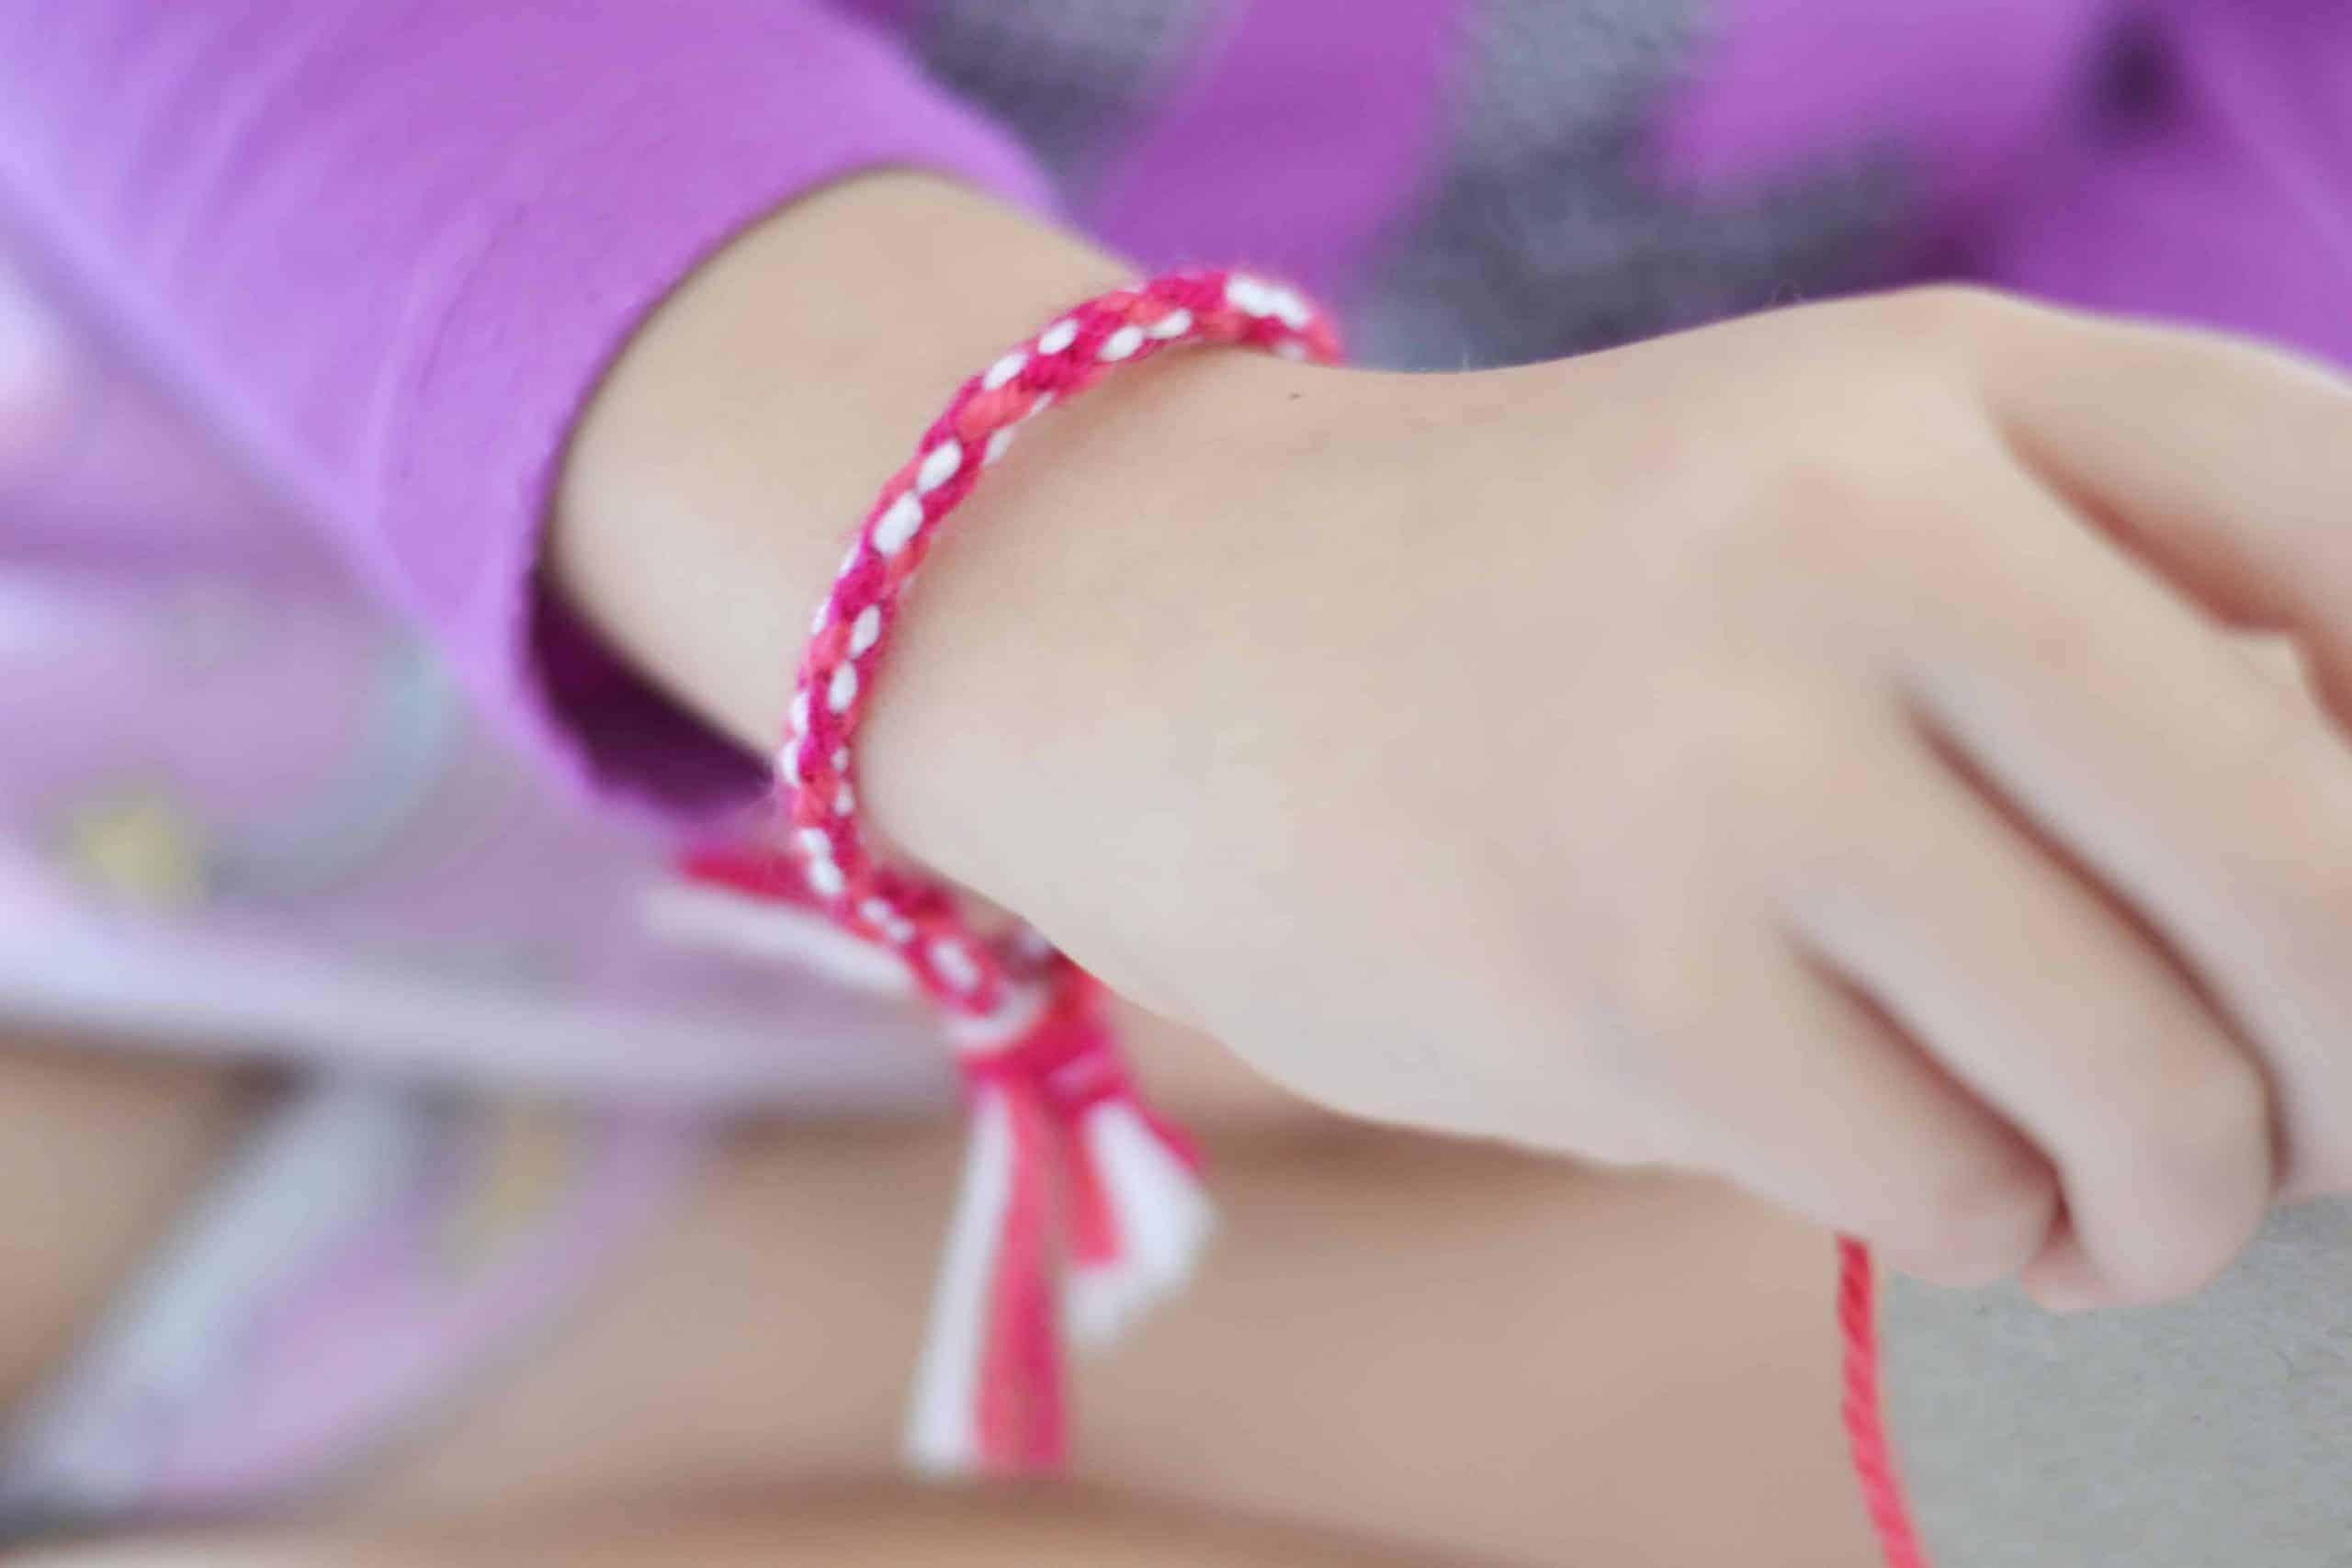 DIY friendship bracelet on young girl's wrist.